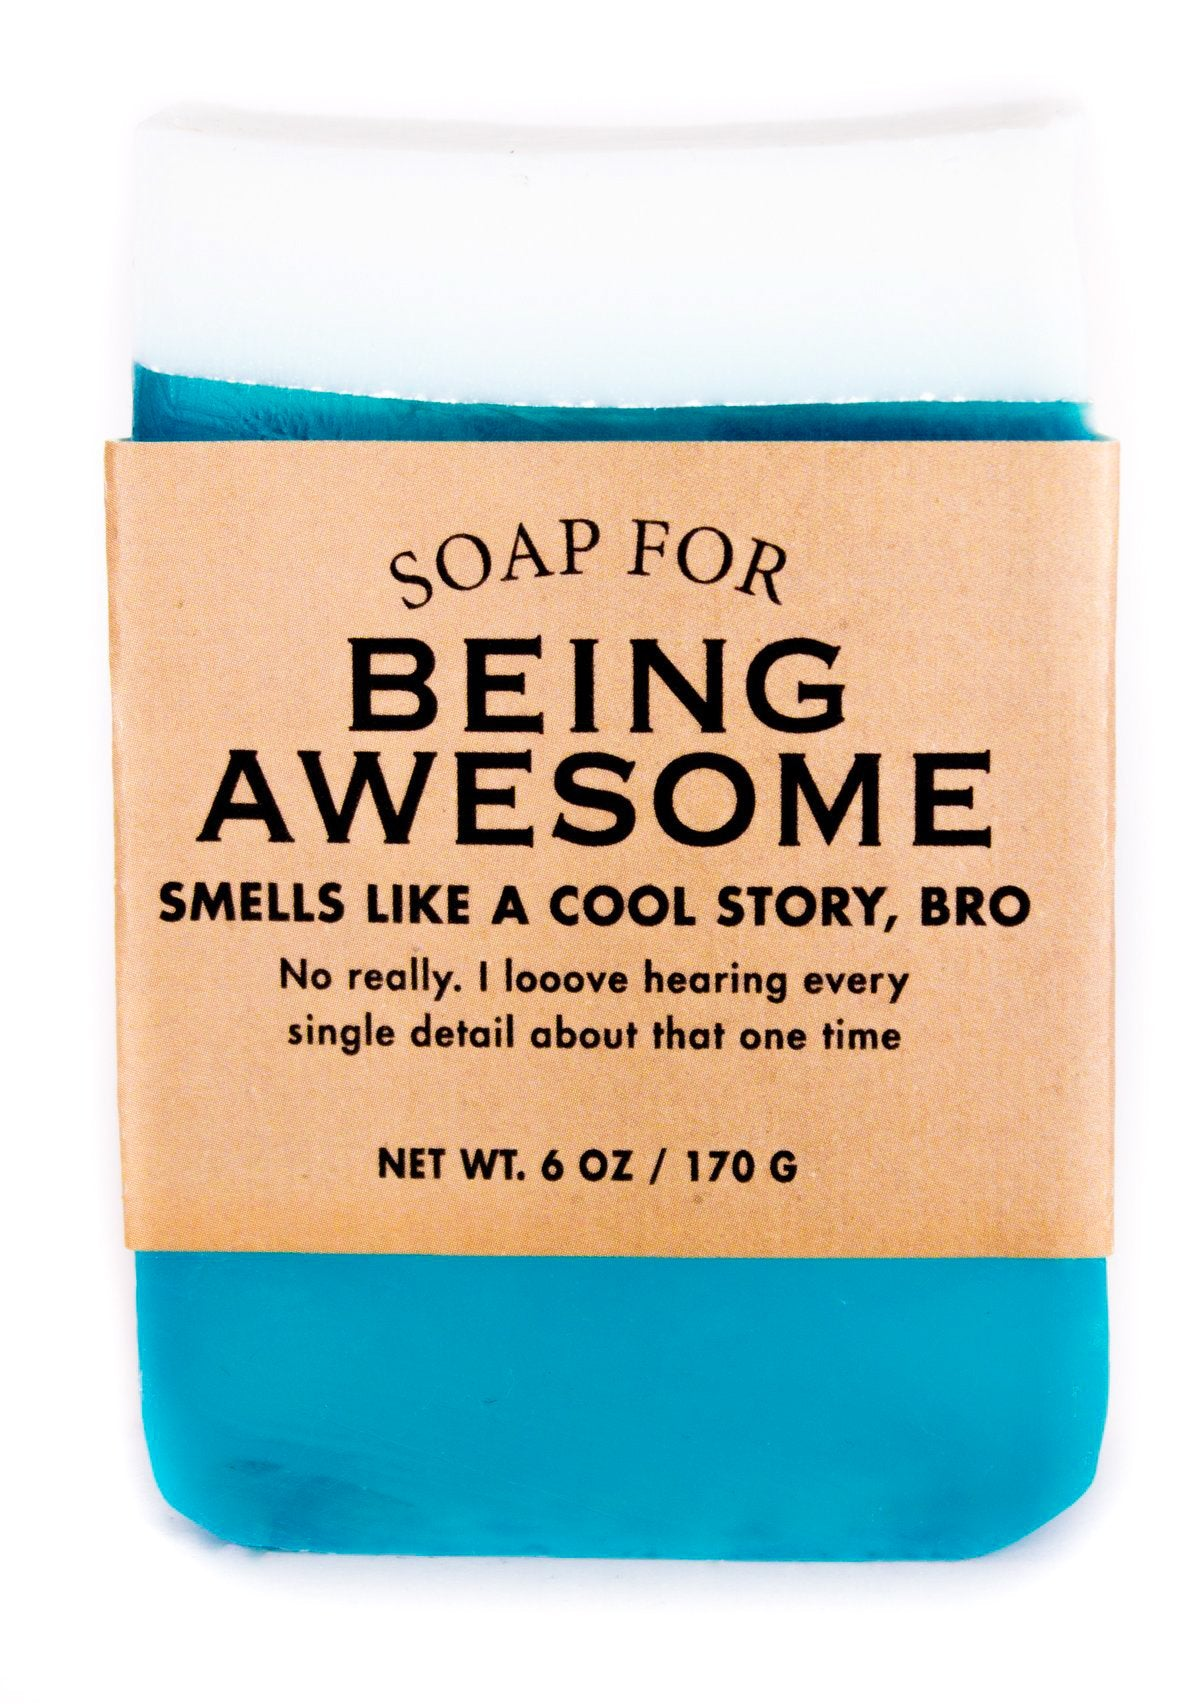 Soap for Being Awesome - Heart of the Home PA